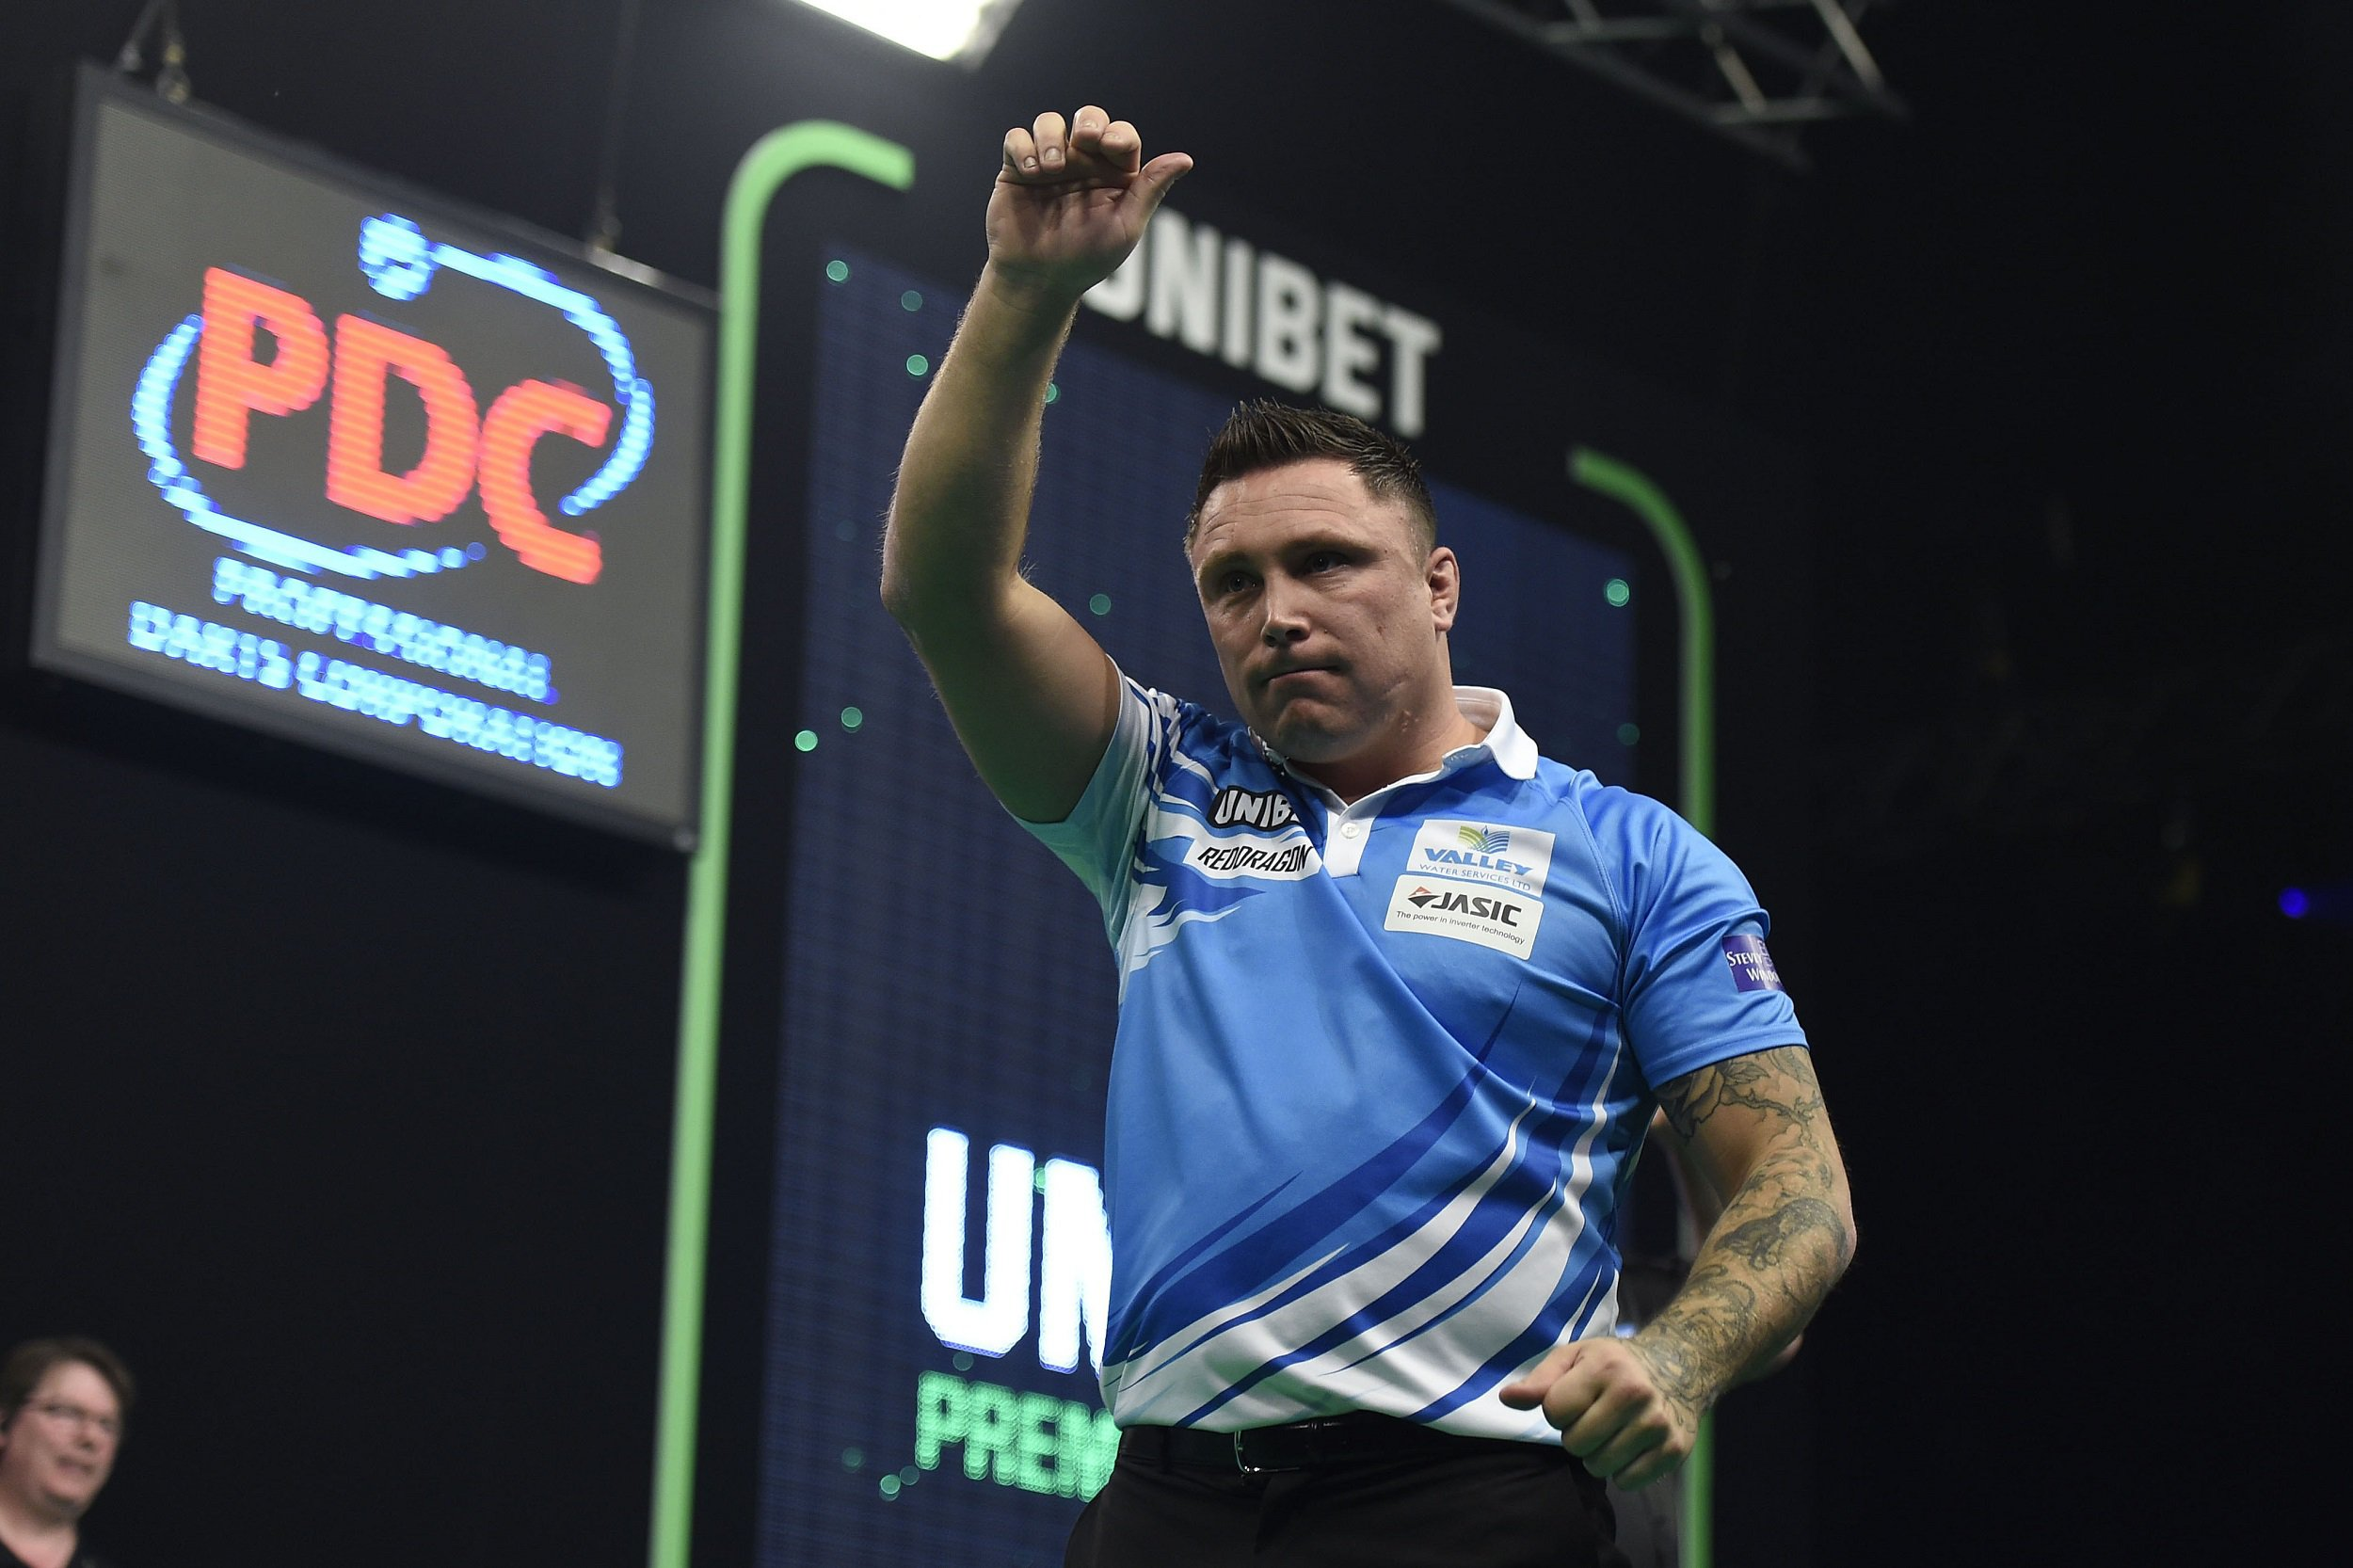 Premier League Darts Cardiff fixtures, odds, table, tickets and schedule